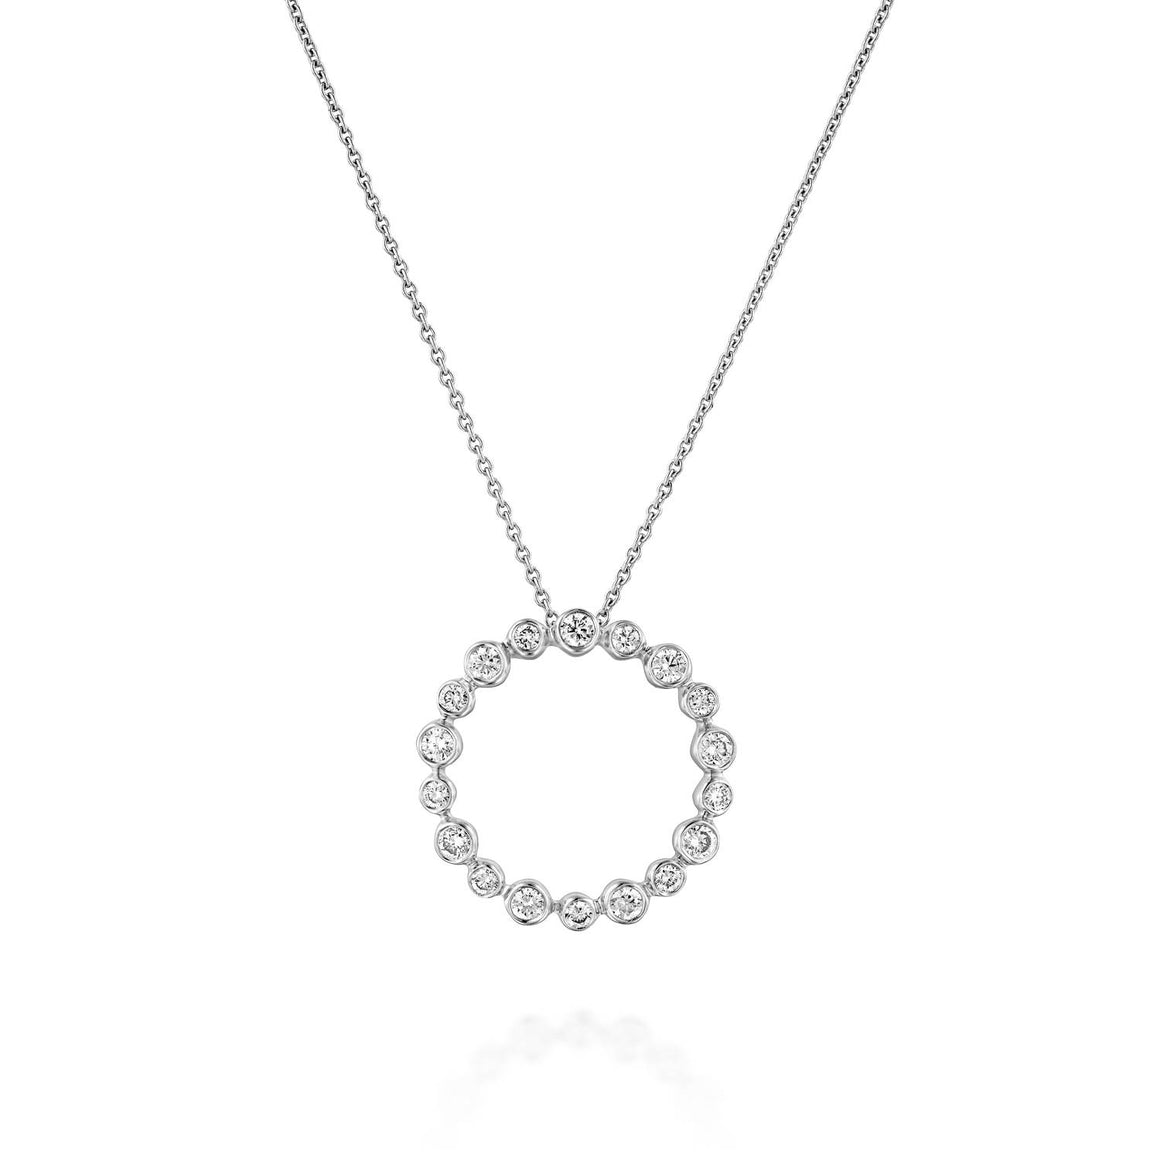 18k White Gold Eternity Diamond Pendant